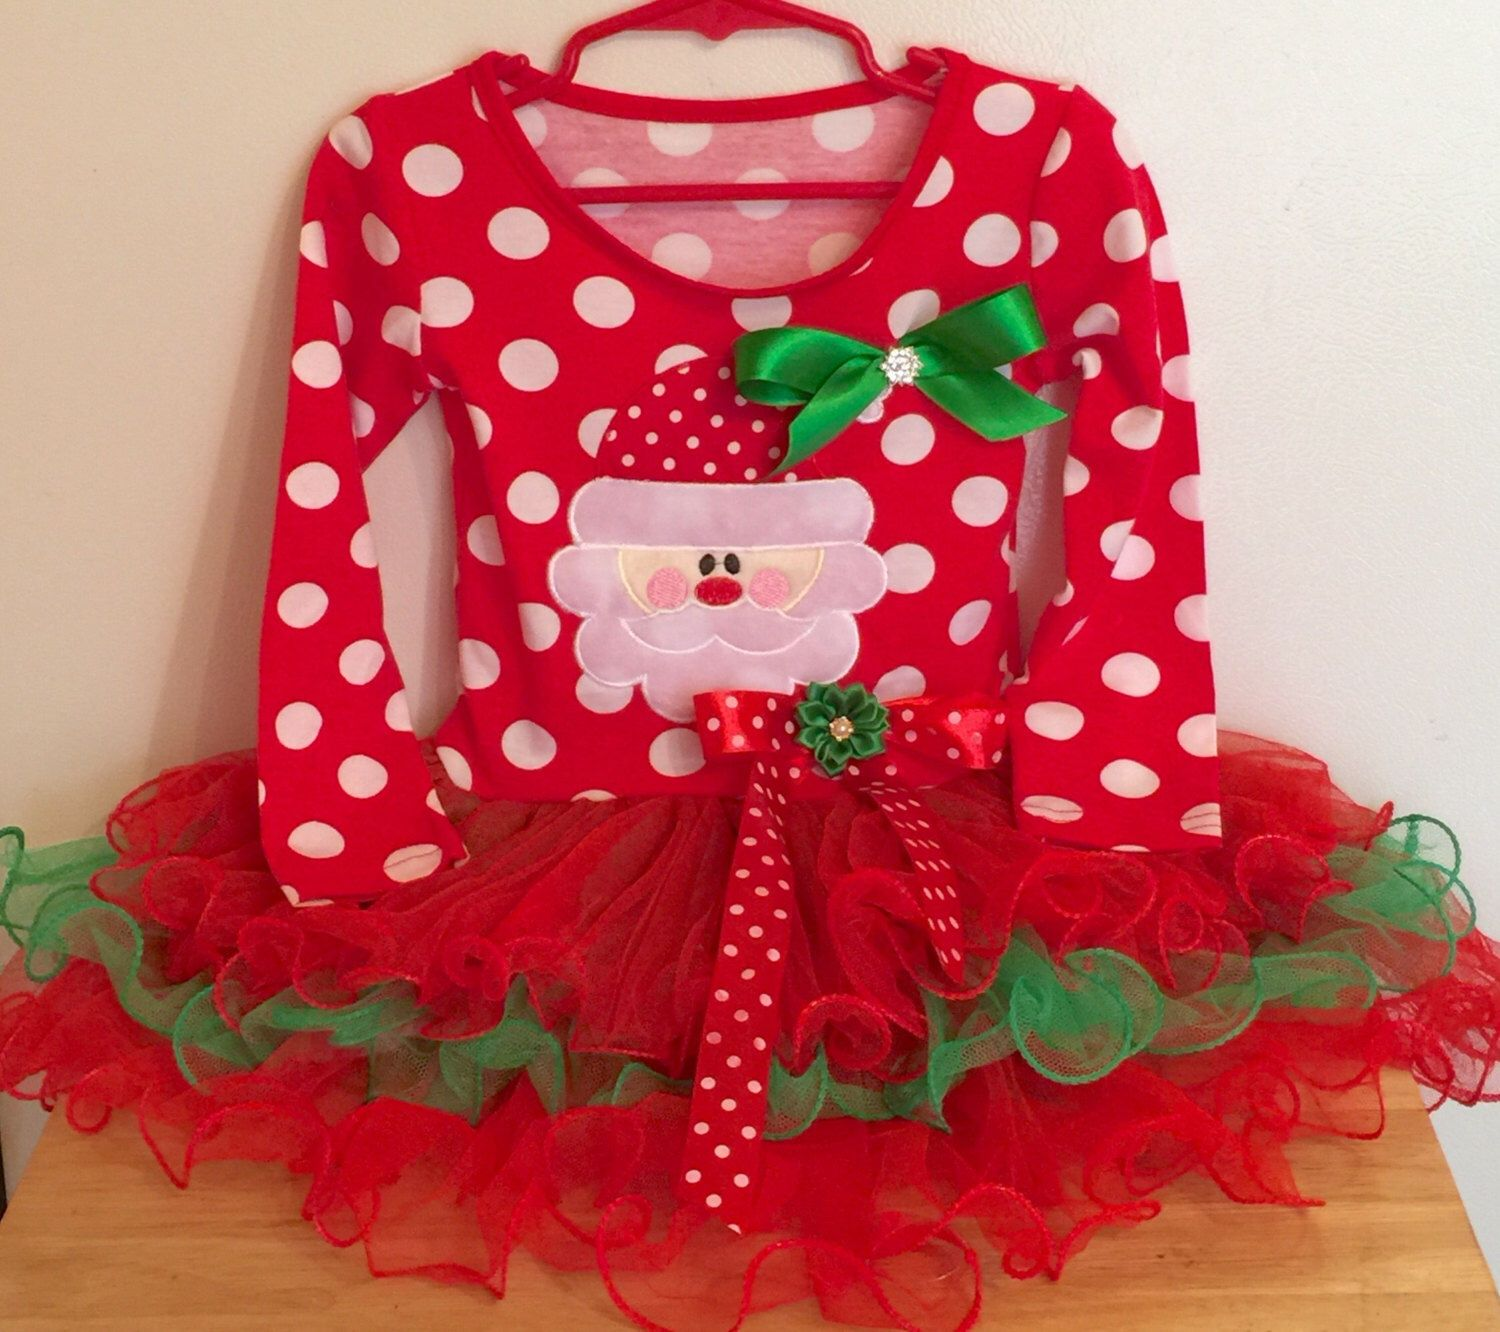 Christmas Red and White Polka Dot Santa Tutu Dress Baby Baby Girl